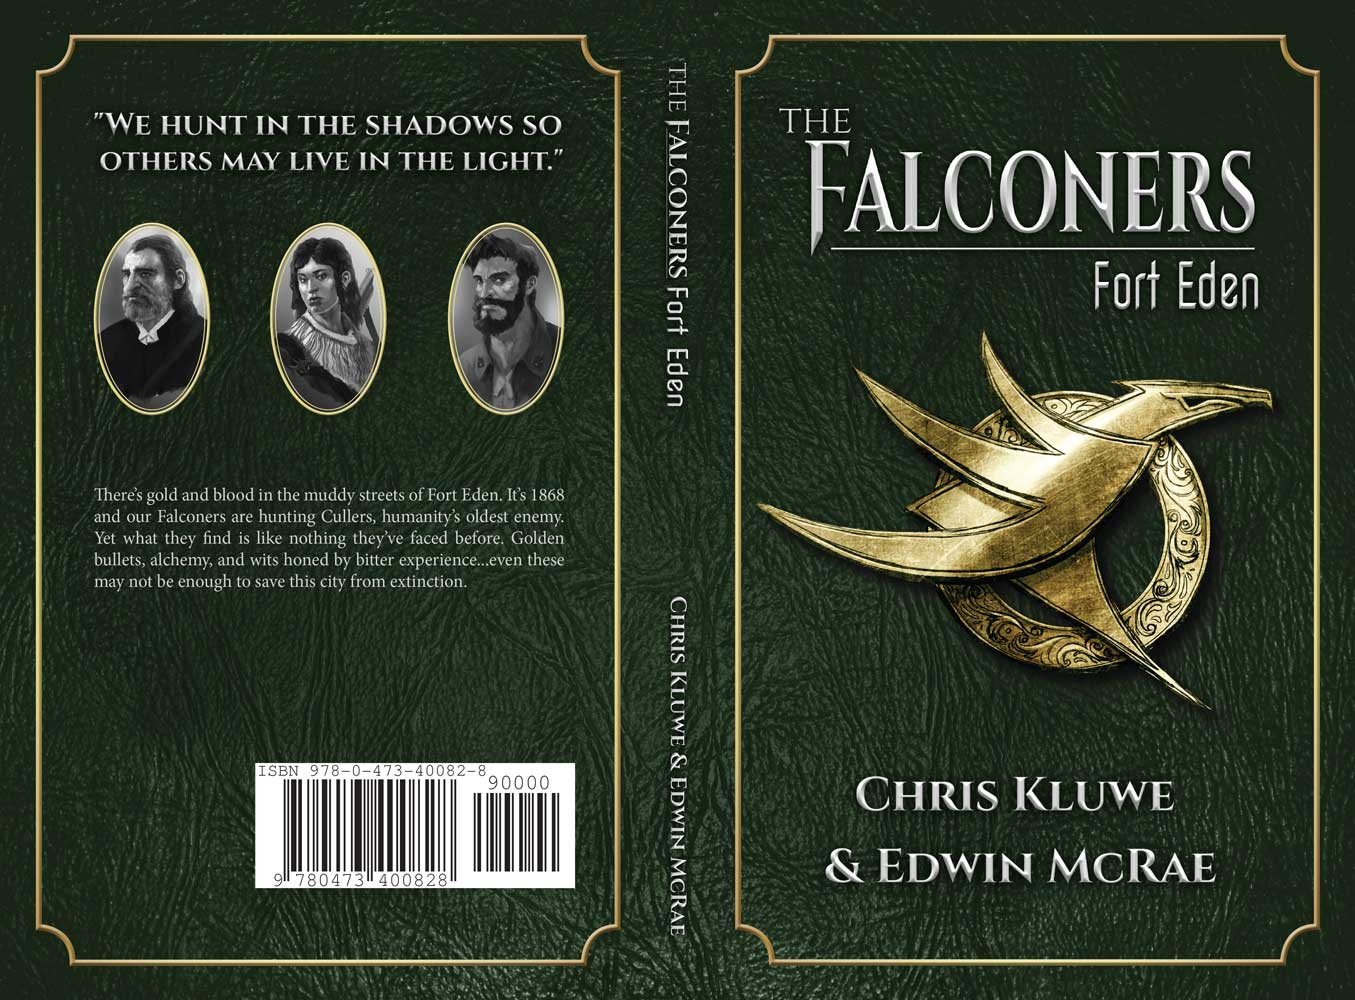 Falconers Fort Eden Cover